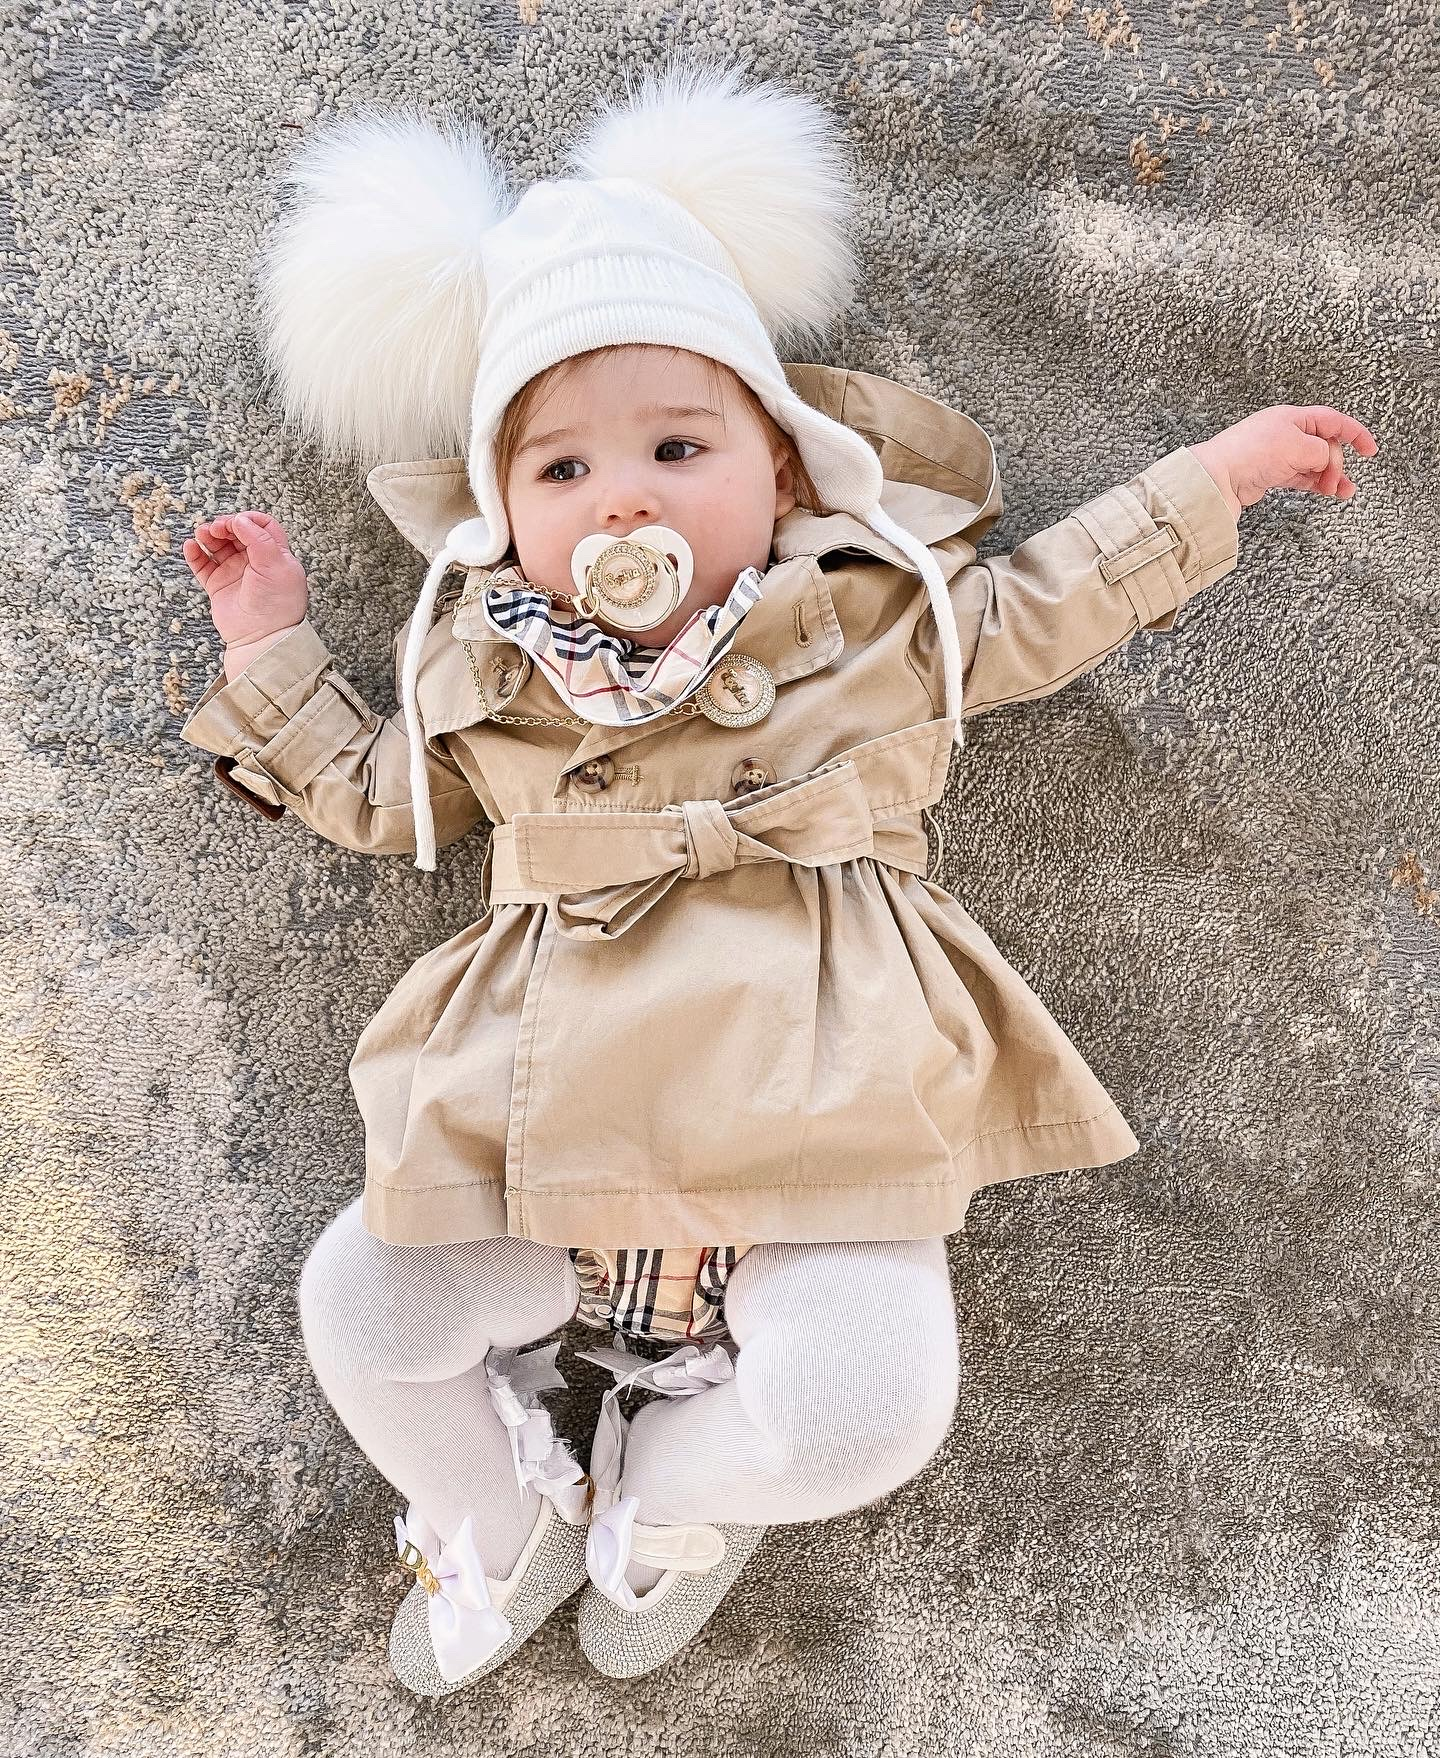 Instagram Recap by popular US fashion blog, The Sweetest Thing: image of a baby wearing a Ralph Lauren trench coat, Etsy Minilittlebaby Gold Pleated Personalised DUMMY AND Chain pacifier, Etsy Minilittlebaby Pacifier Clip, Etsy Minilittlebaby personalized Pearl Baby Girl shoes, and Gap Toddler Cable-Knit Pom Beanie.